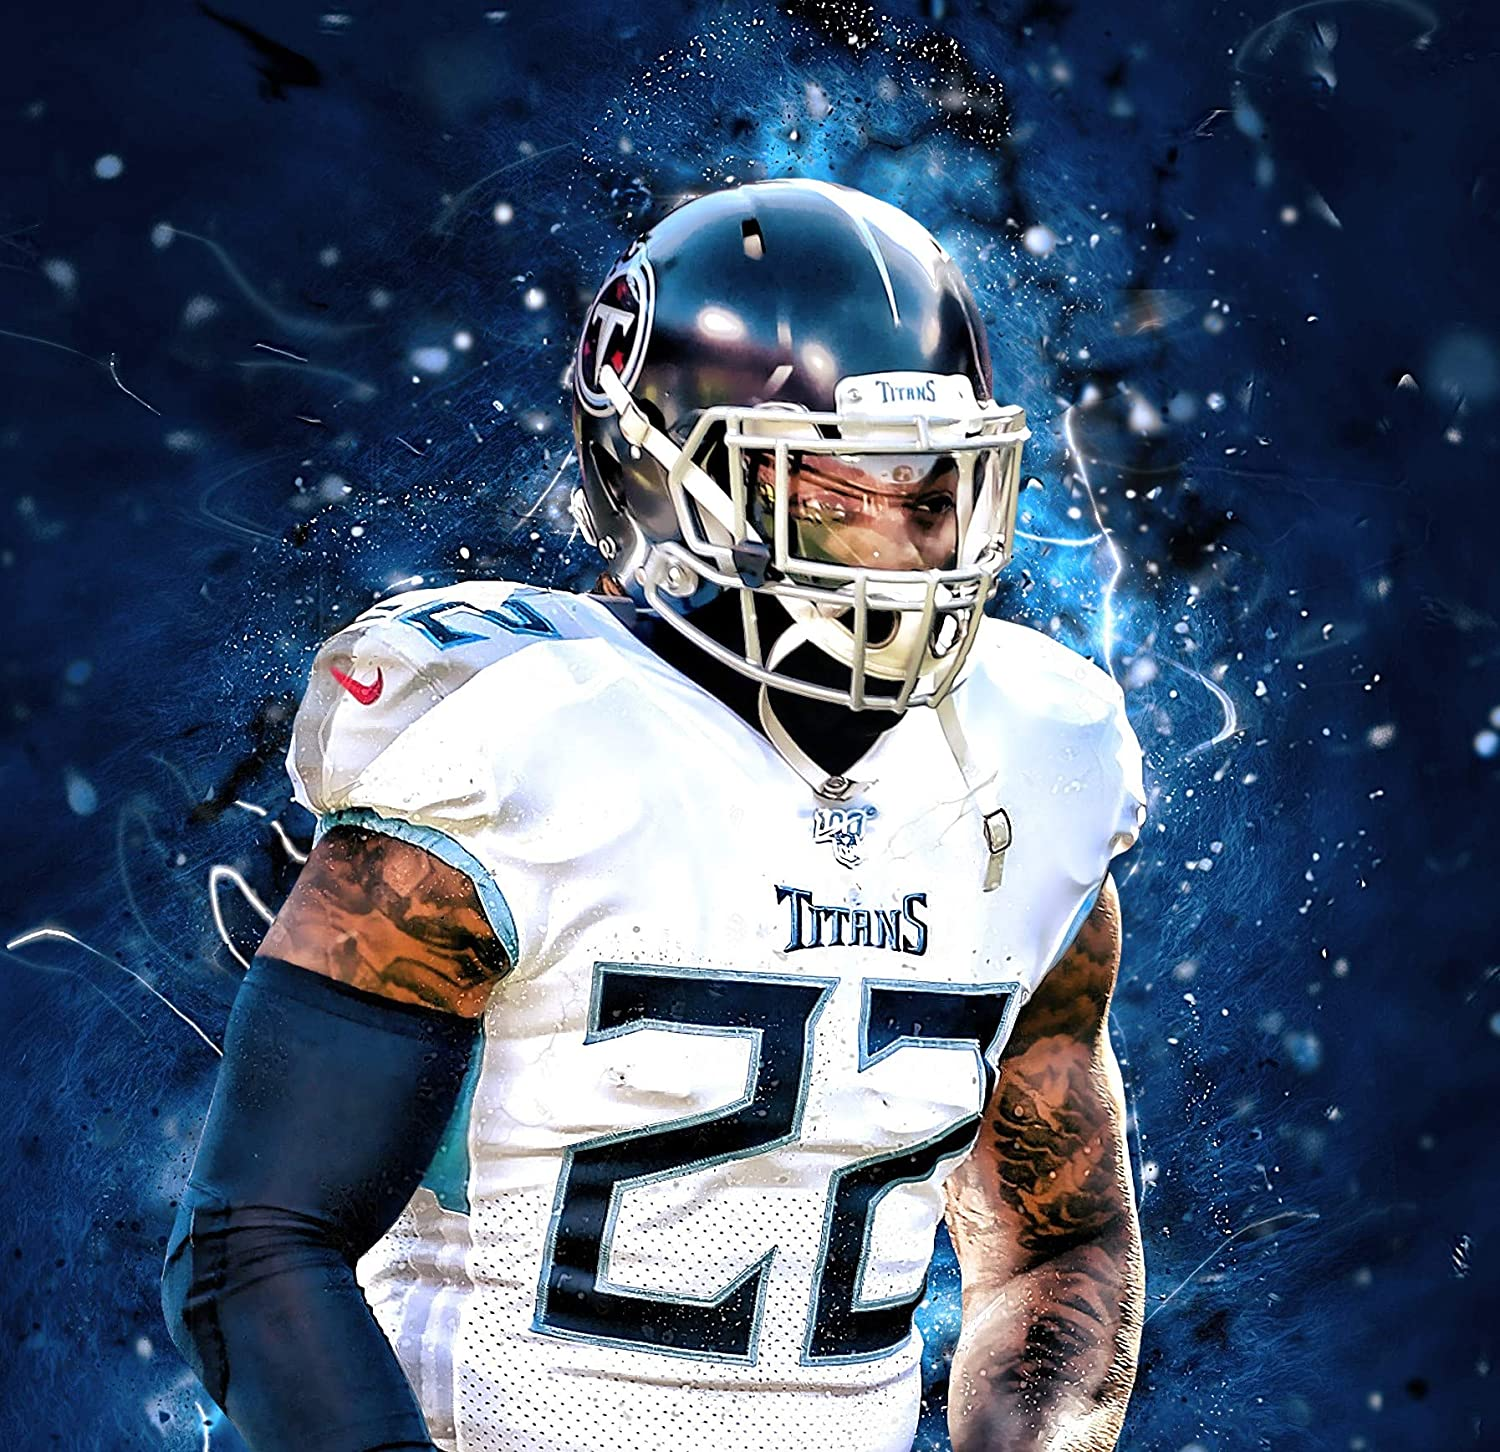 Derrick Henry Tennessee Titans Poster Print, American Football Player, Real Player, Derrick Henry Decor, Canvas Art, Posters for Wall SIZE 24''x32'' (61x81 cm)